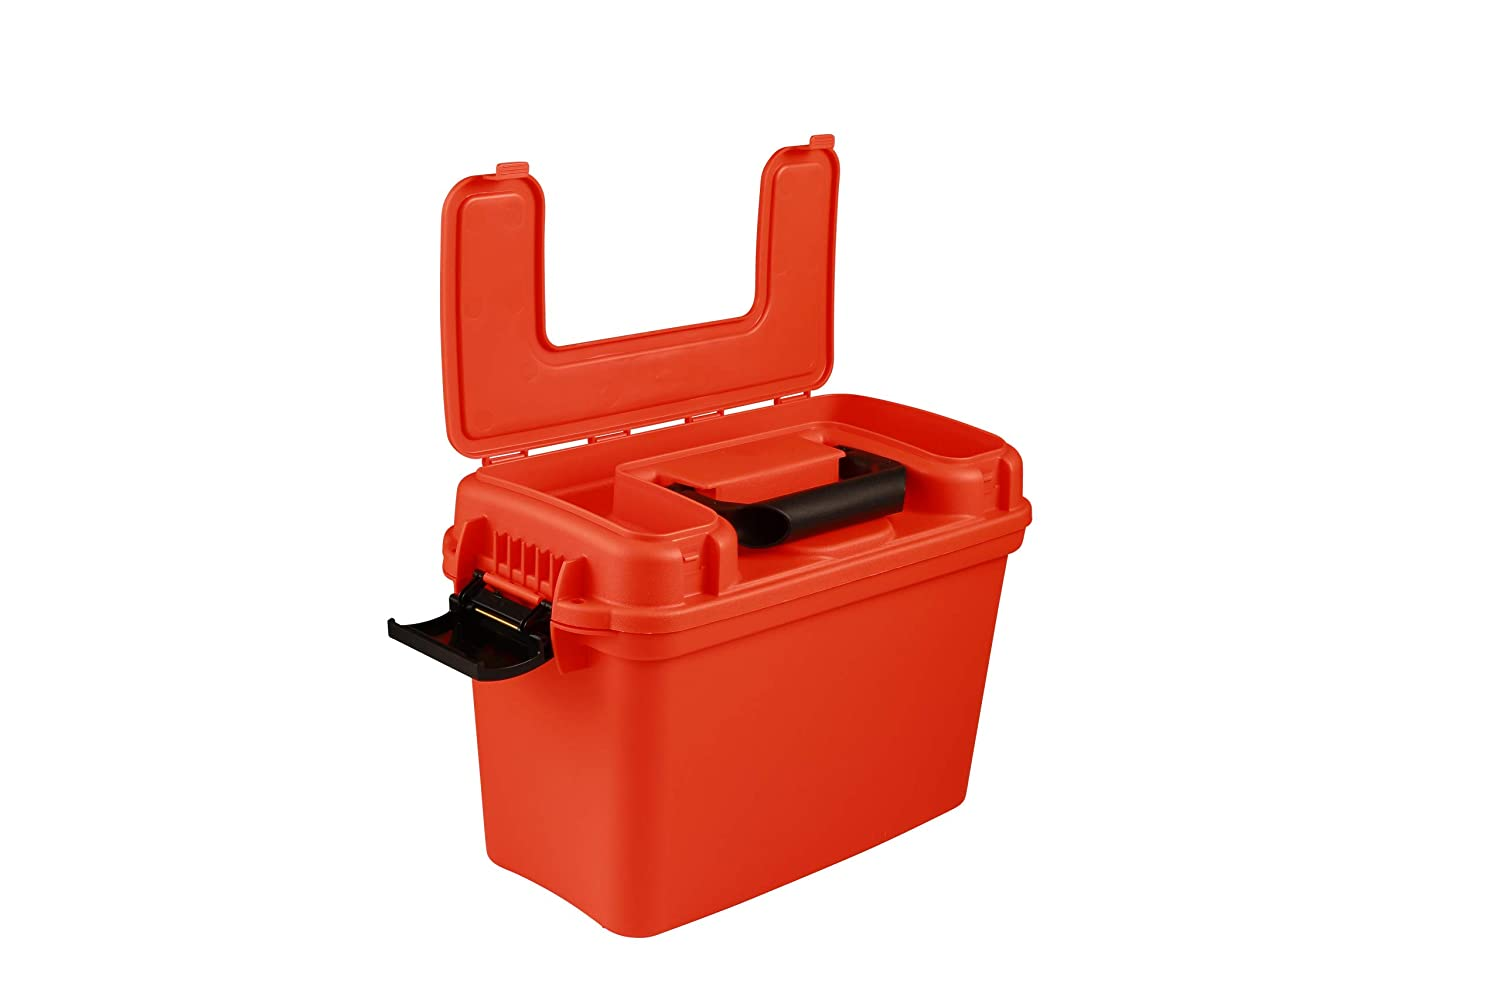 attwood 11834-1 Waterproof Boaters Dry Box Bright Safety Orange attwood 11834-1 Waterproof Boater/'s Dry Box